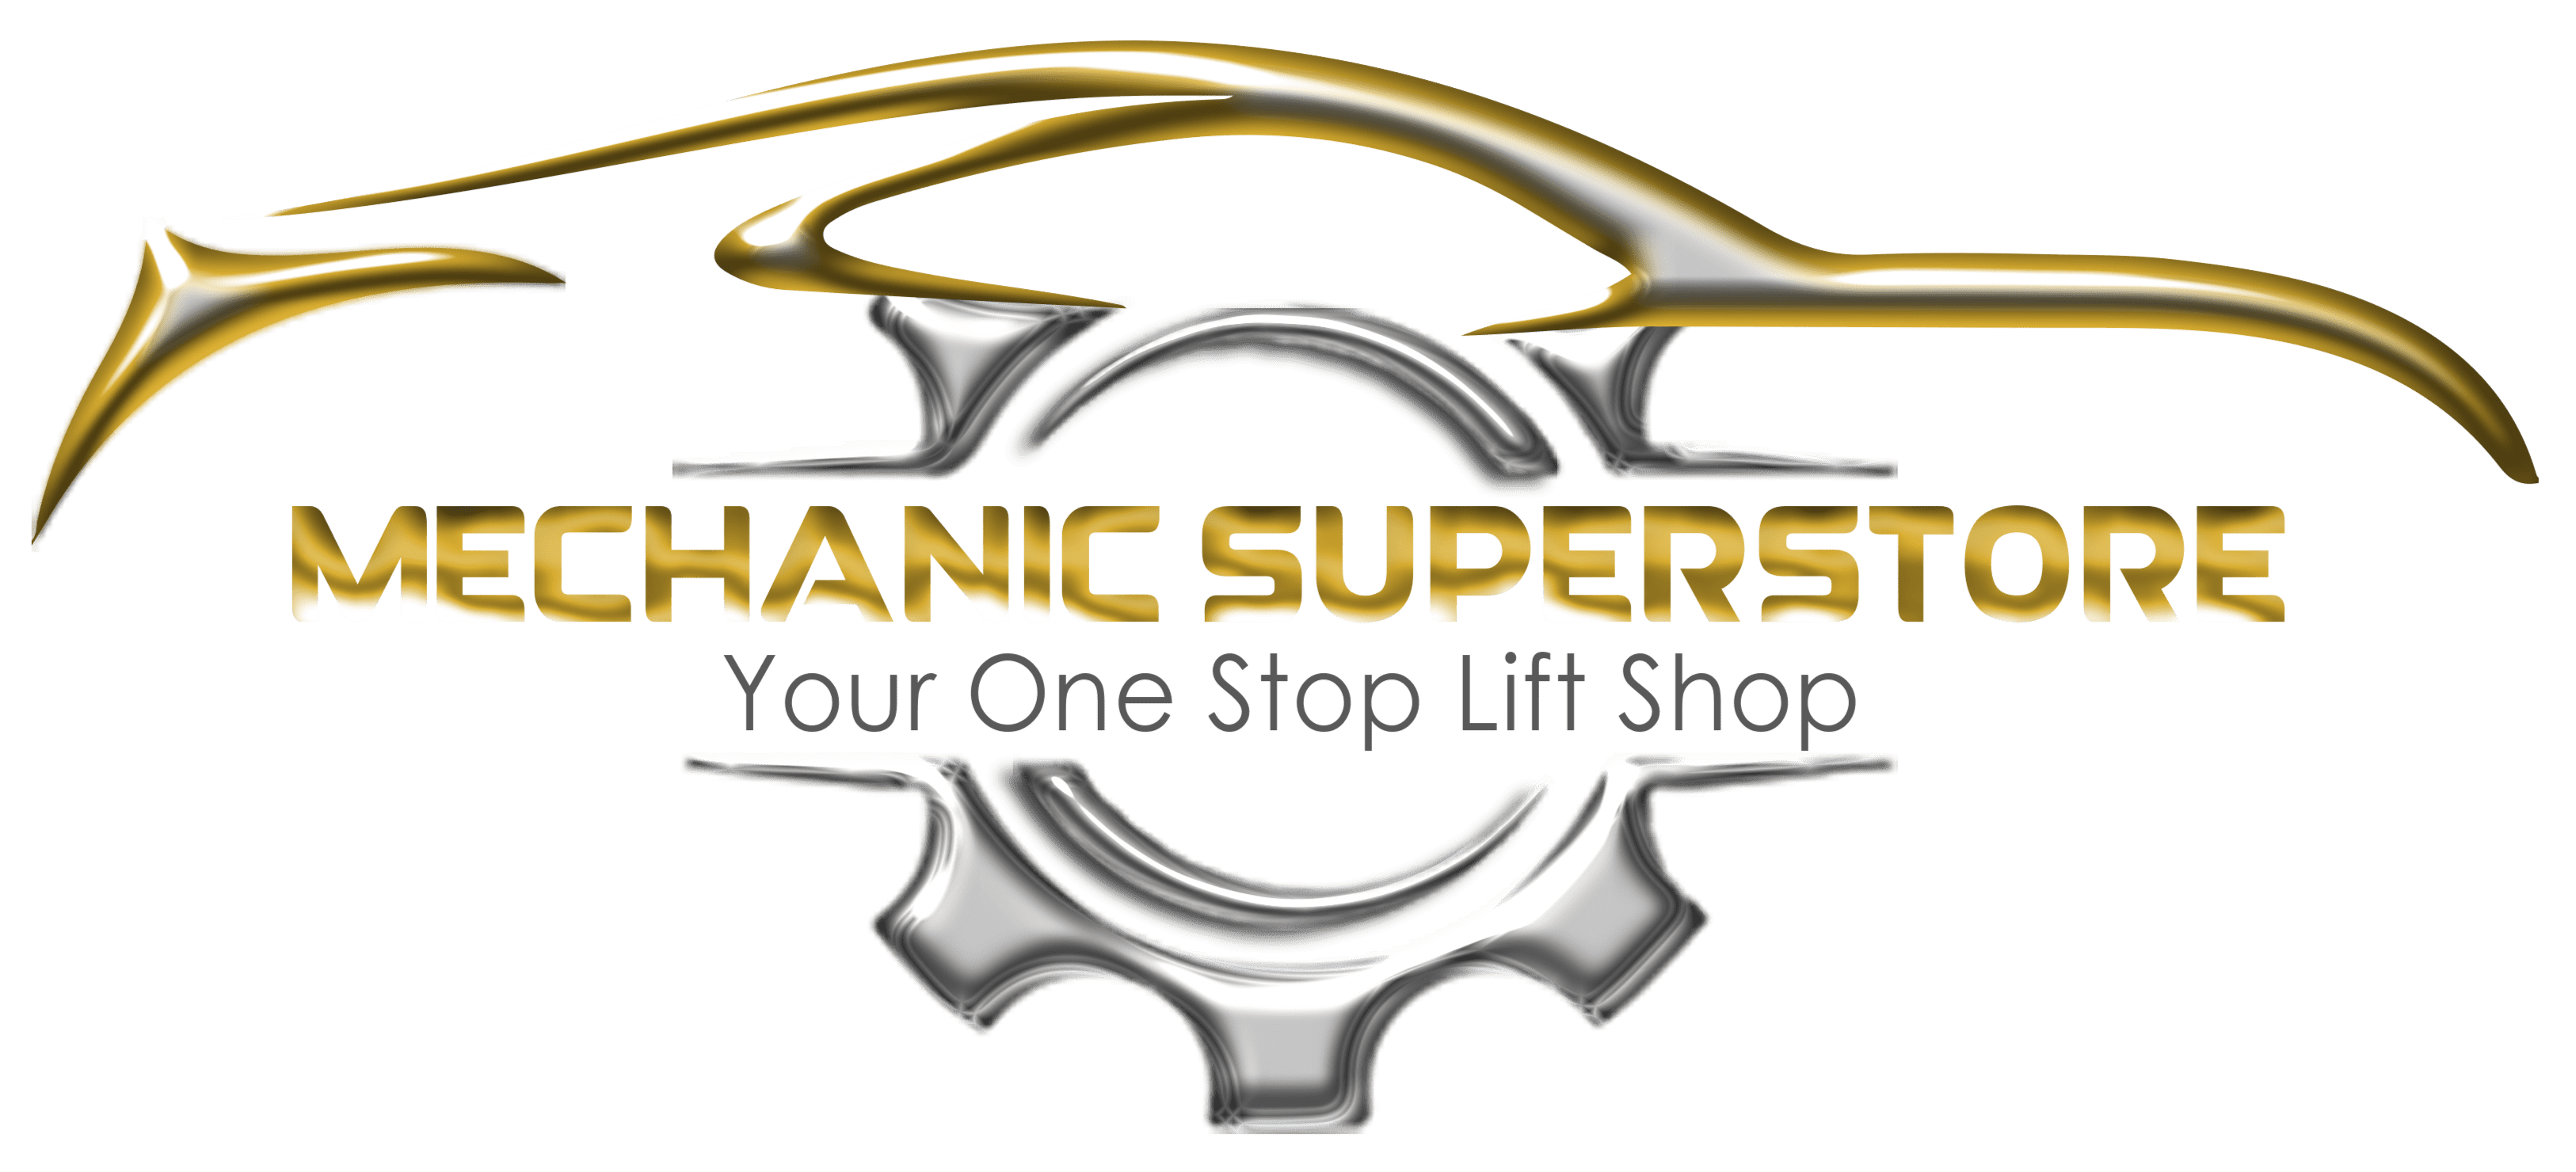 Mechanic Superstore